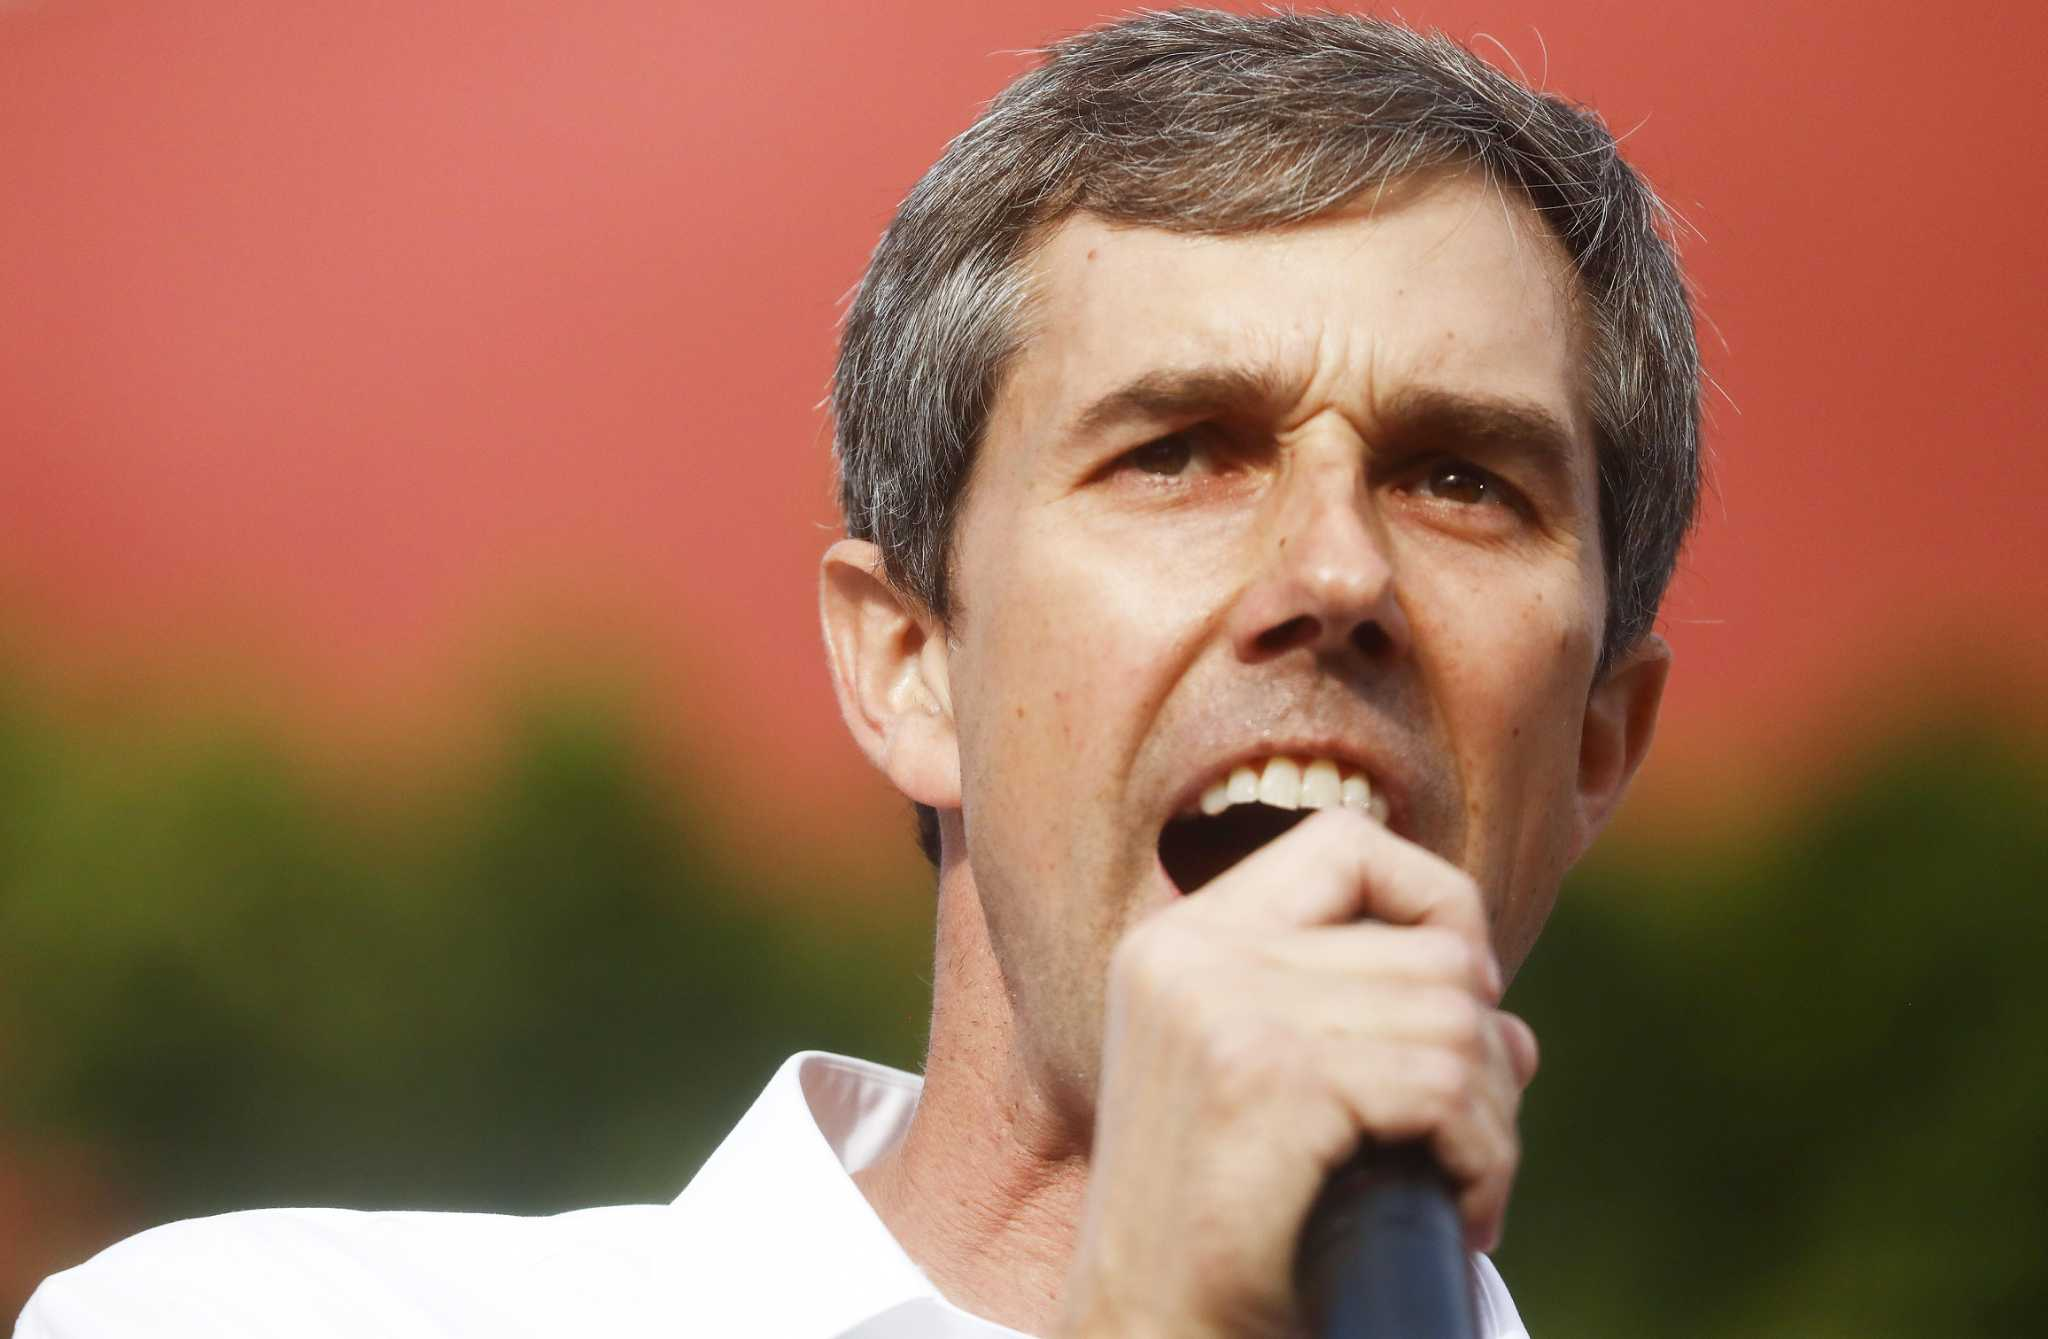 Beto O'Rourke: Here's how I'd stop gun violence [Opinion]